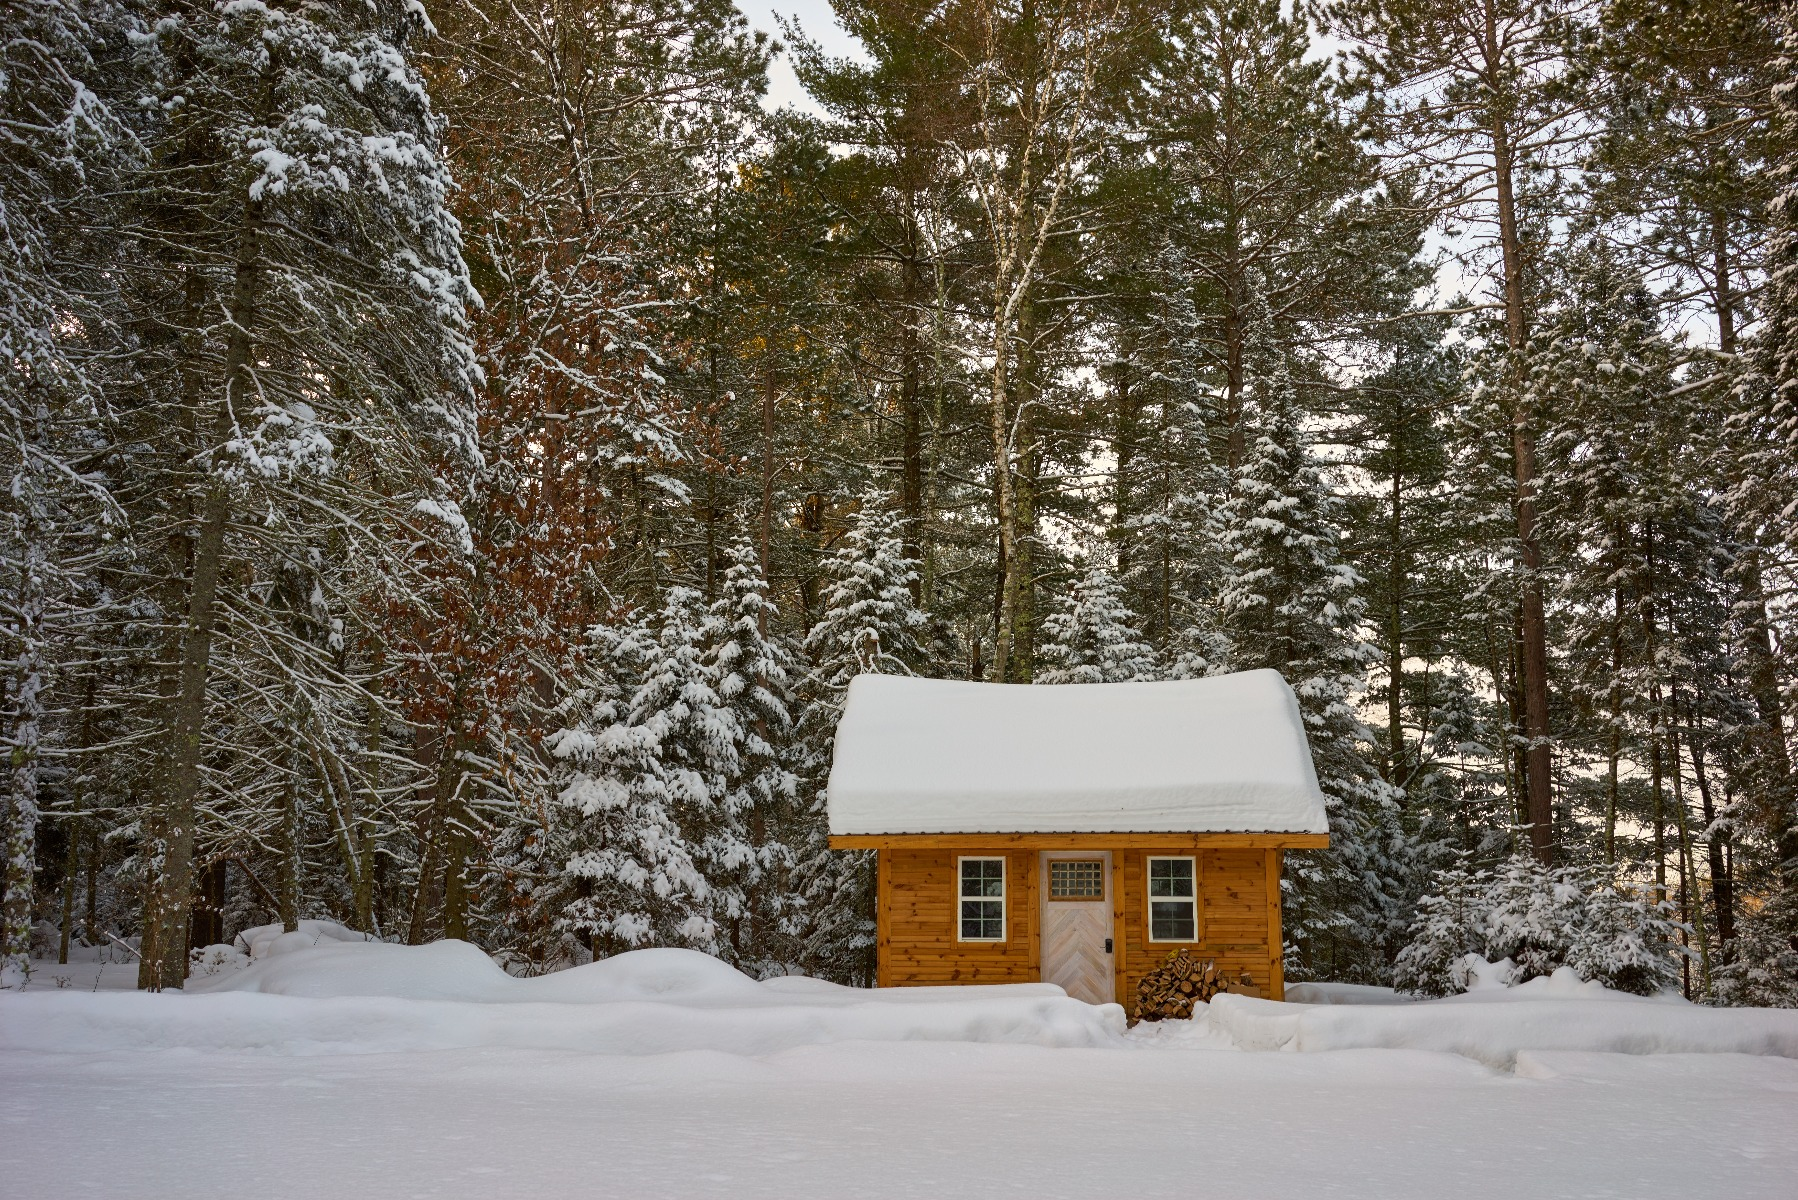 Proper maintenance will ensure your cabin stands for many Winters to come